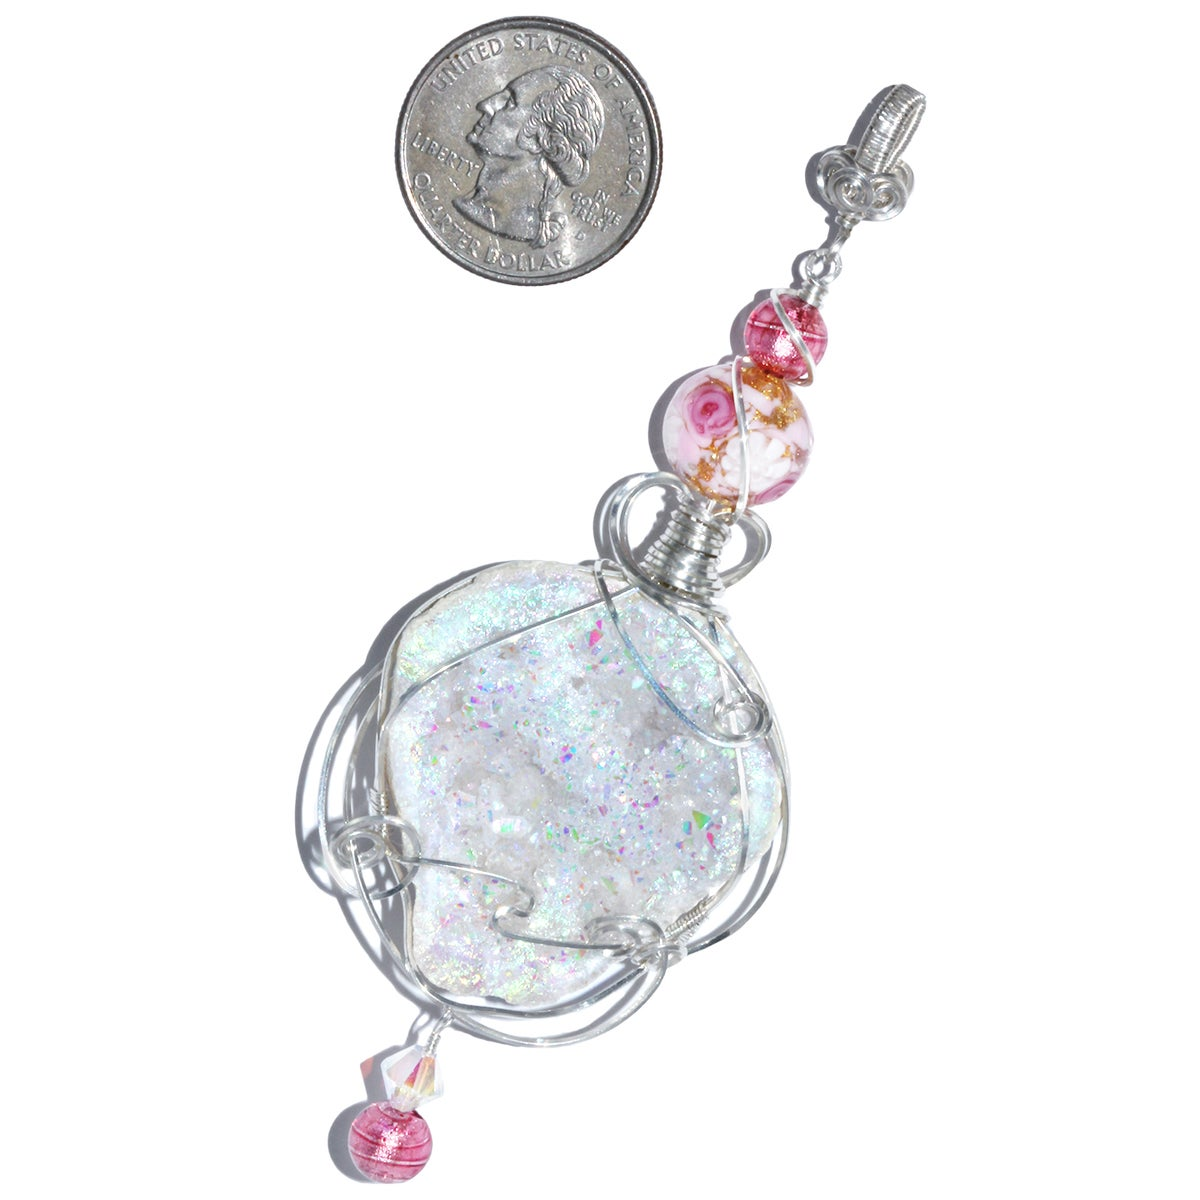 Angel Aura Drusy Geode Pendant with Venetian Glass Beads